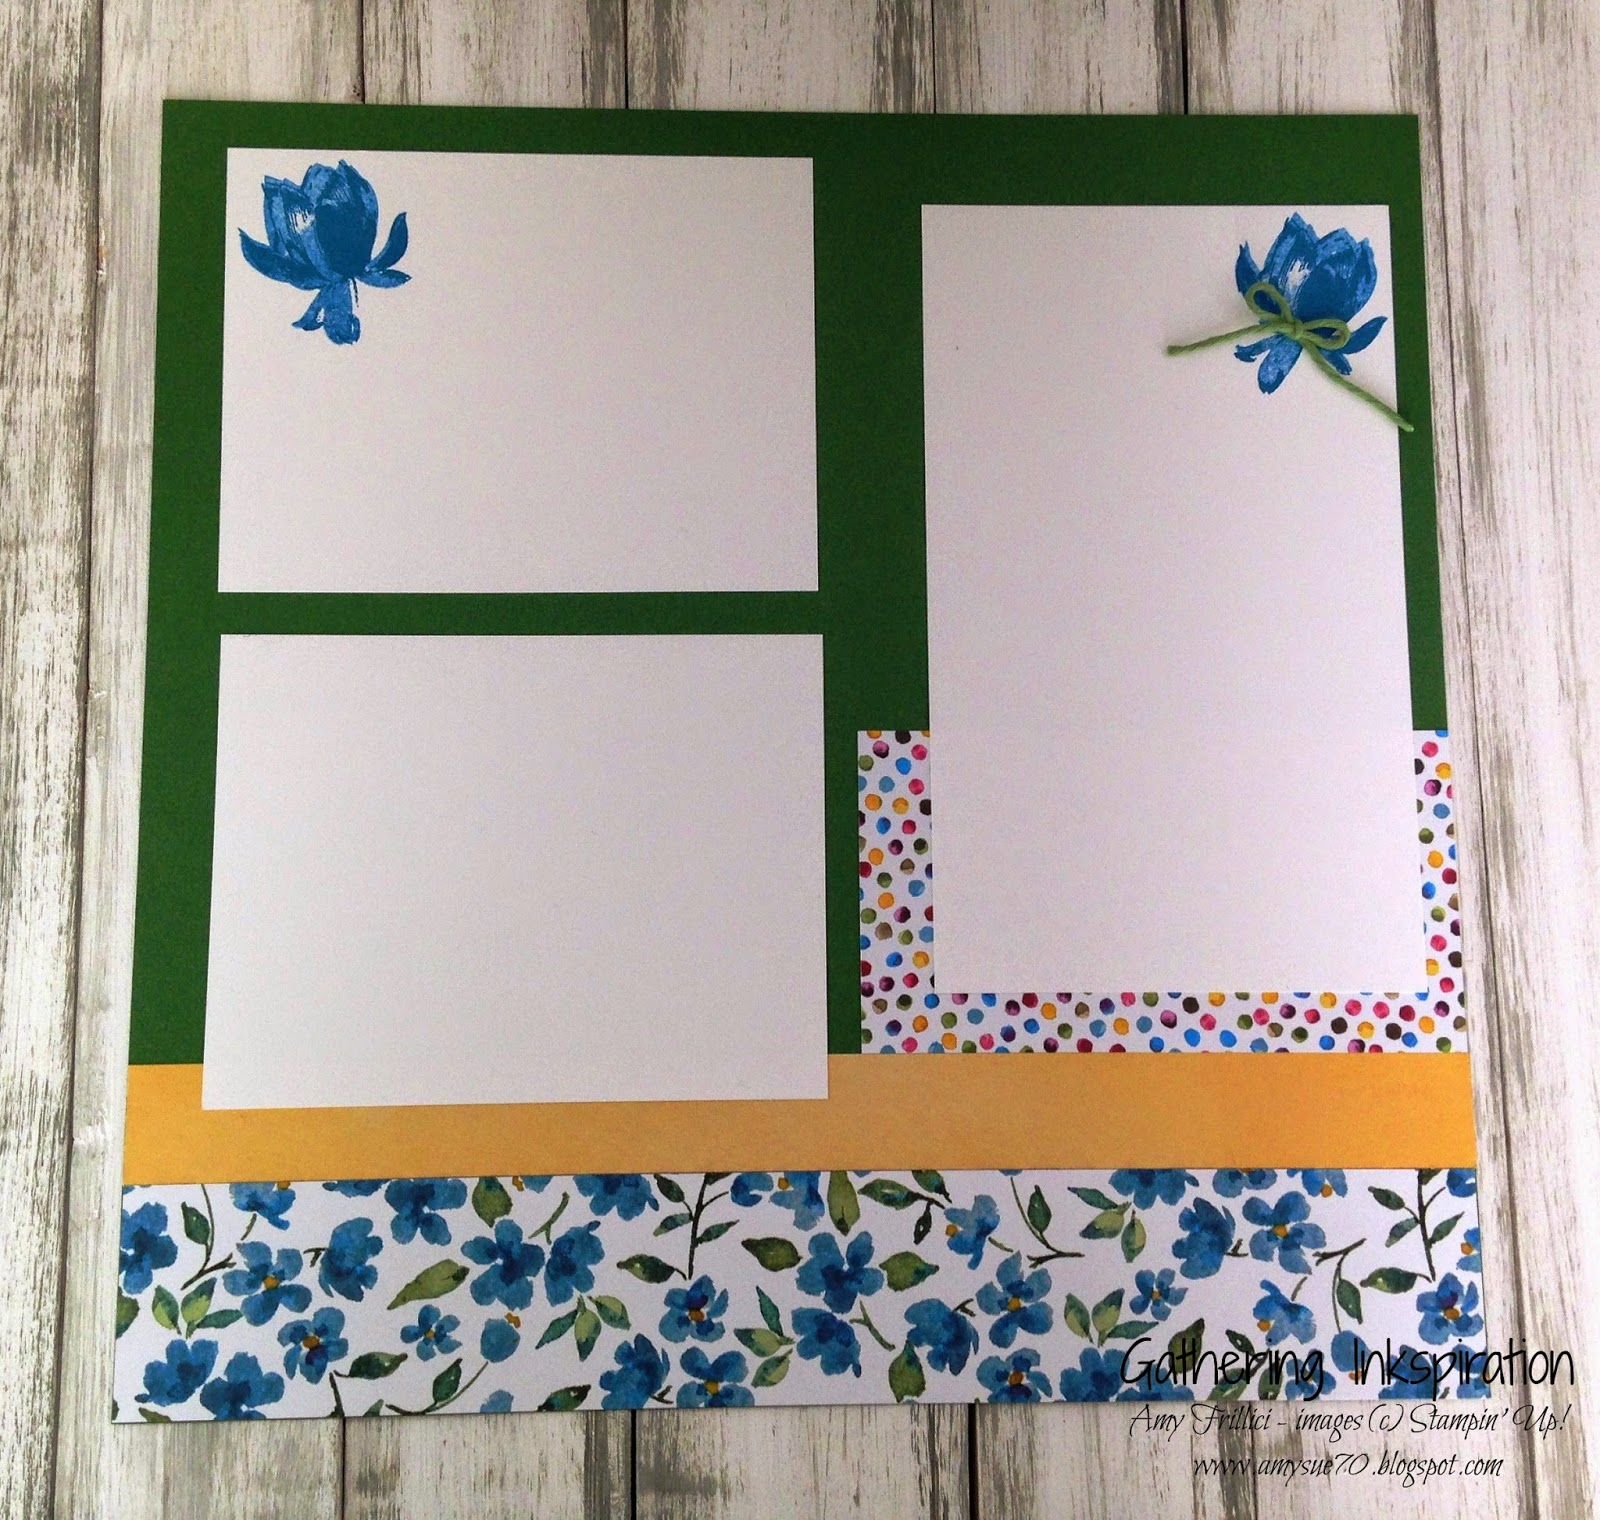 How to scrapbook yahoo - I Love These Flowers